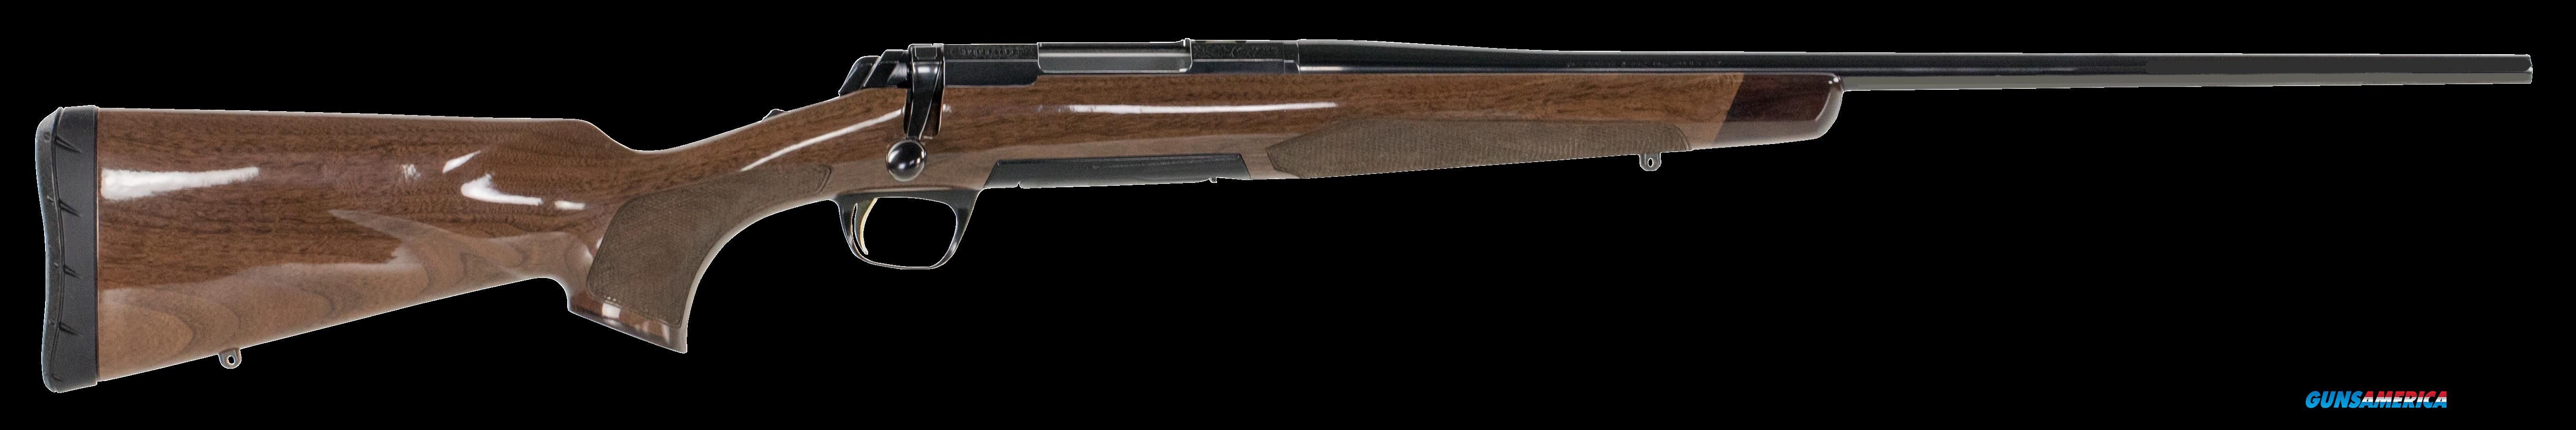 "Browning 035200211 X-Bolt Medallion Bolt 243 Winchester 22"" 4+1 Walnut Stock Blued  Guns > Rifles > Browning Rifles > Bolt Action > Hunting > Blue"